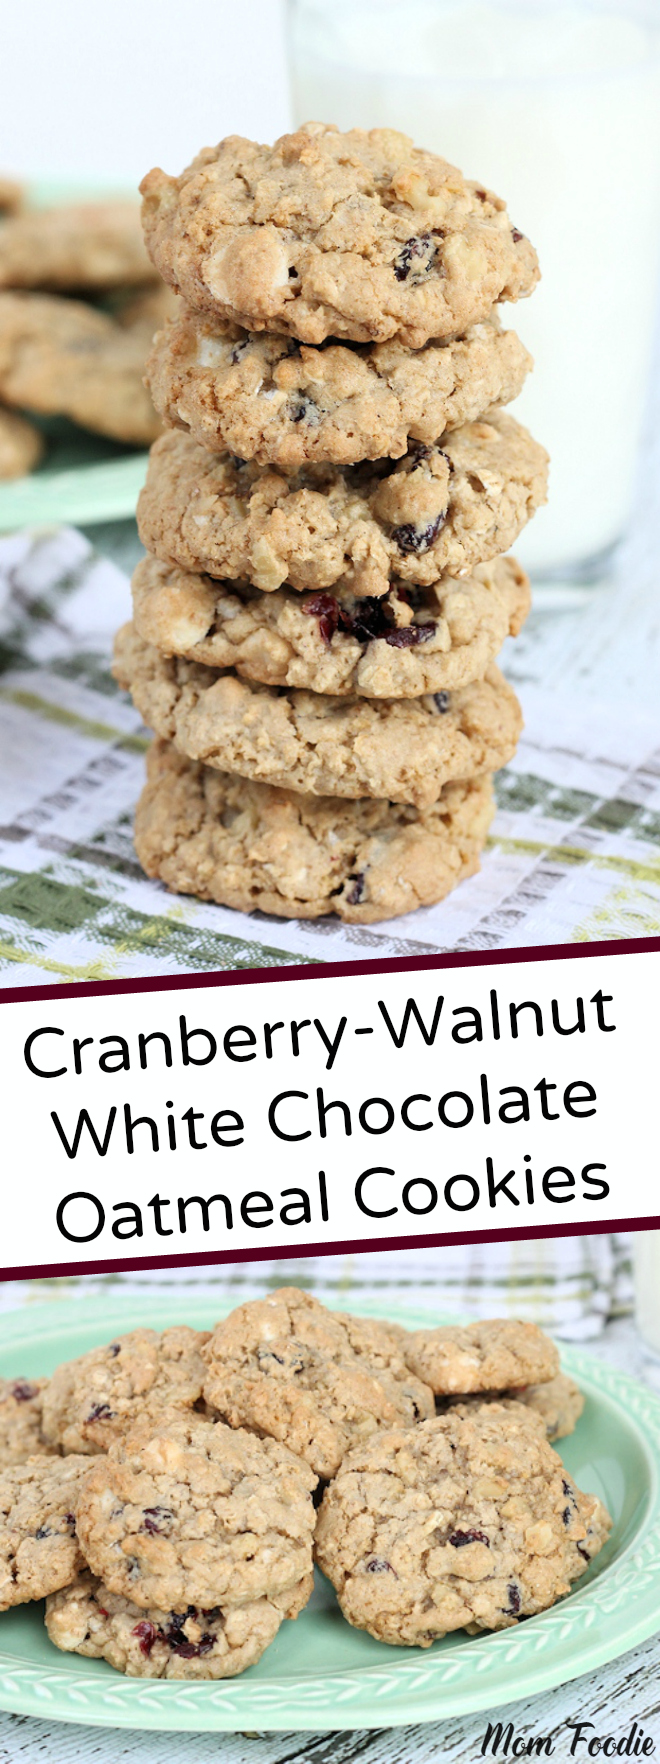 Cranberry Walnut White Chocolate Oatmeal Cookies